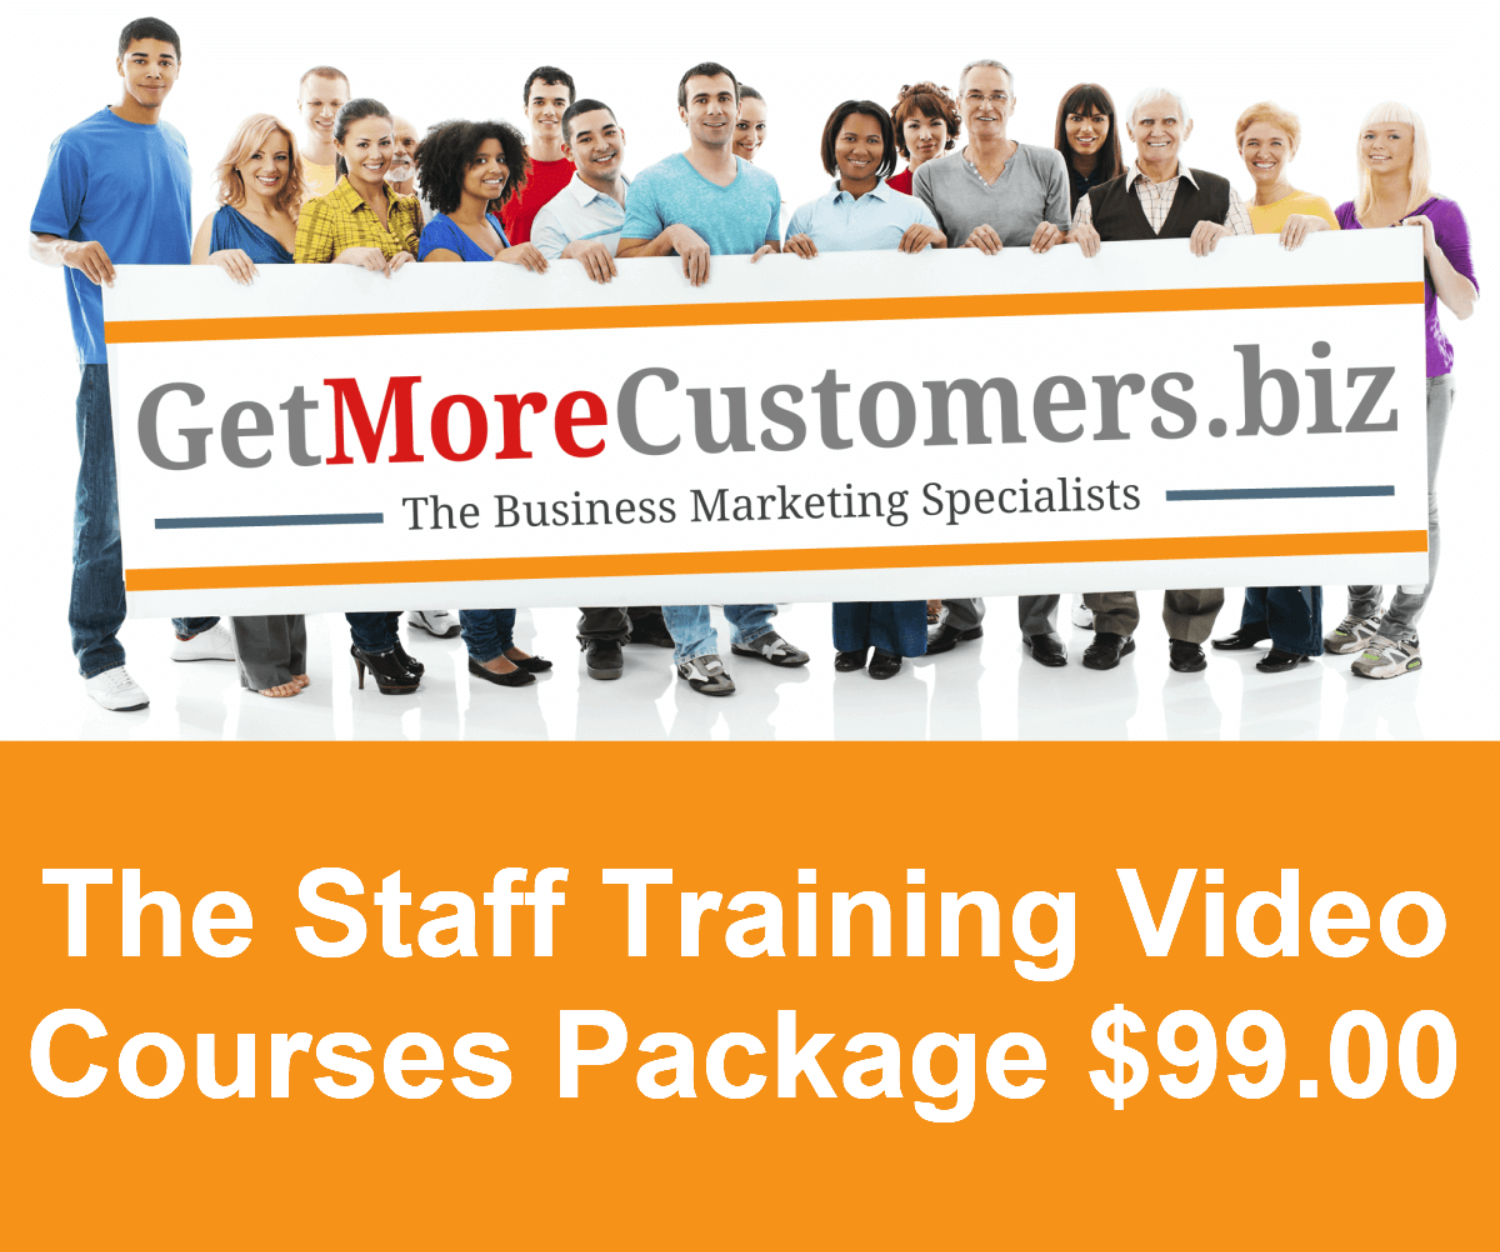 Staff Training Video Courses Package